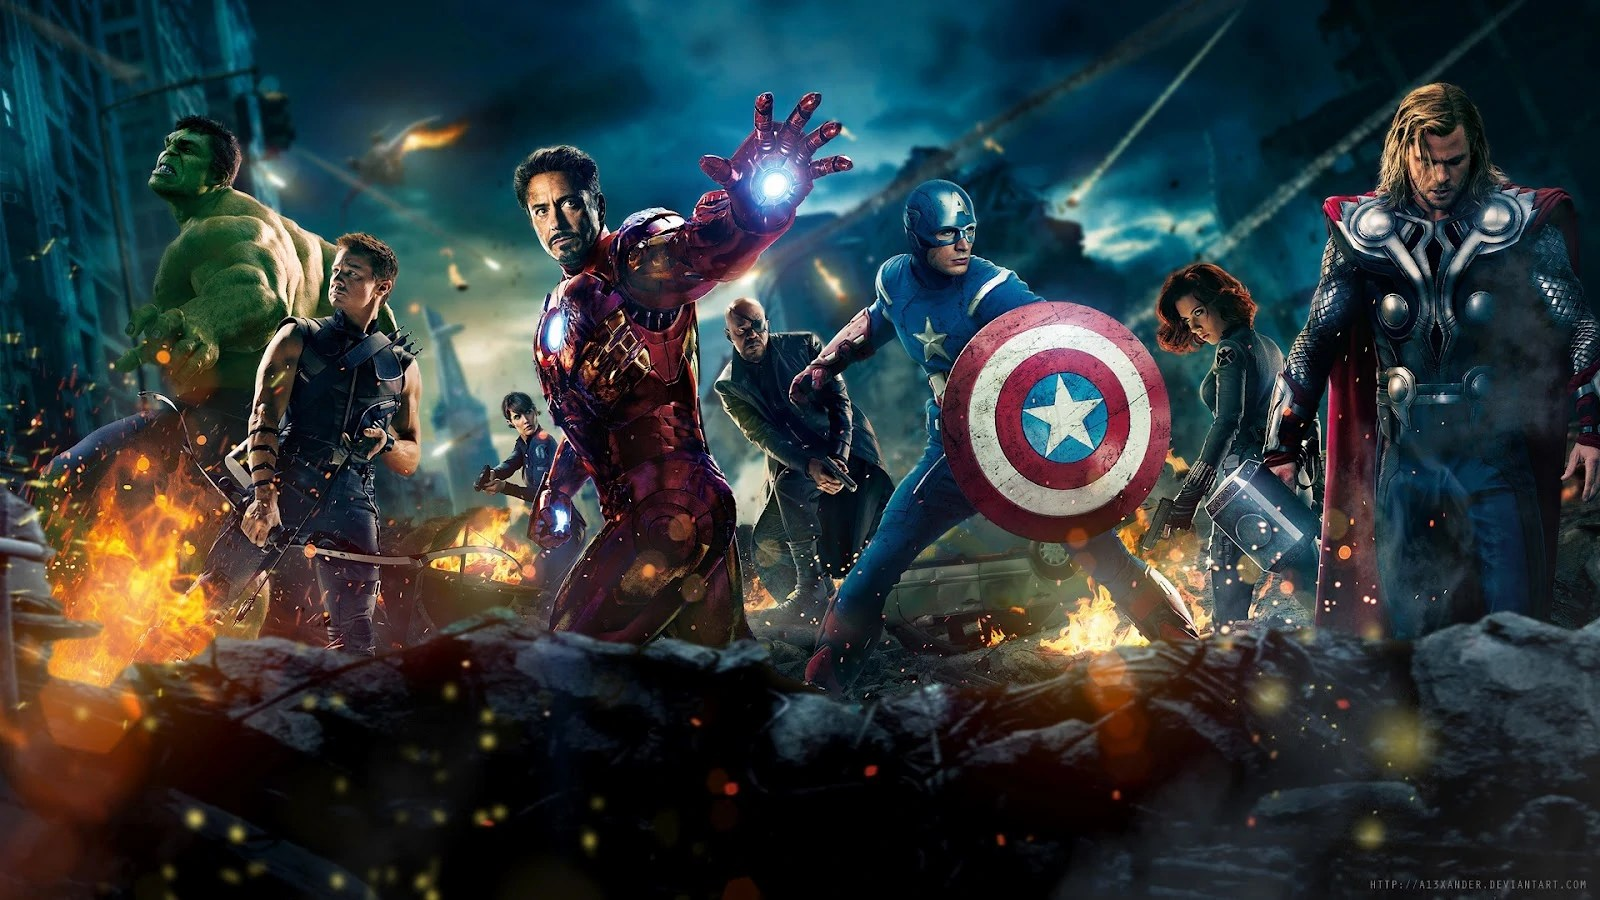 Image - Avengers-2012-full-hd-wallpaper-1920x1080-movie-1080p.jpg | Disney Wiki | FANDOM powered ...